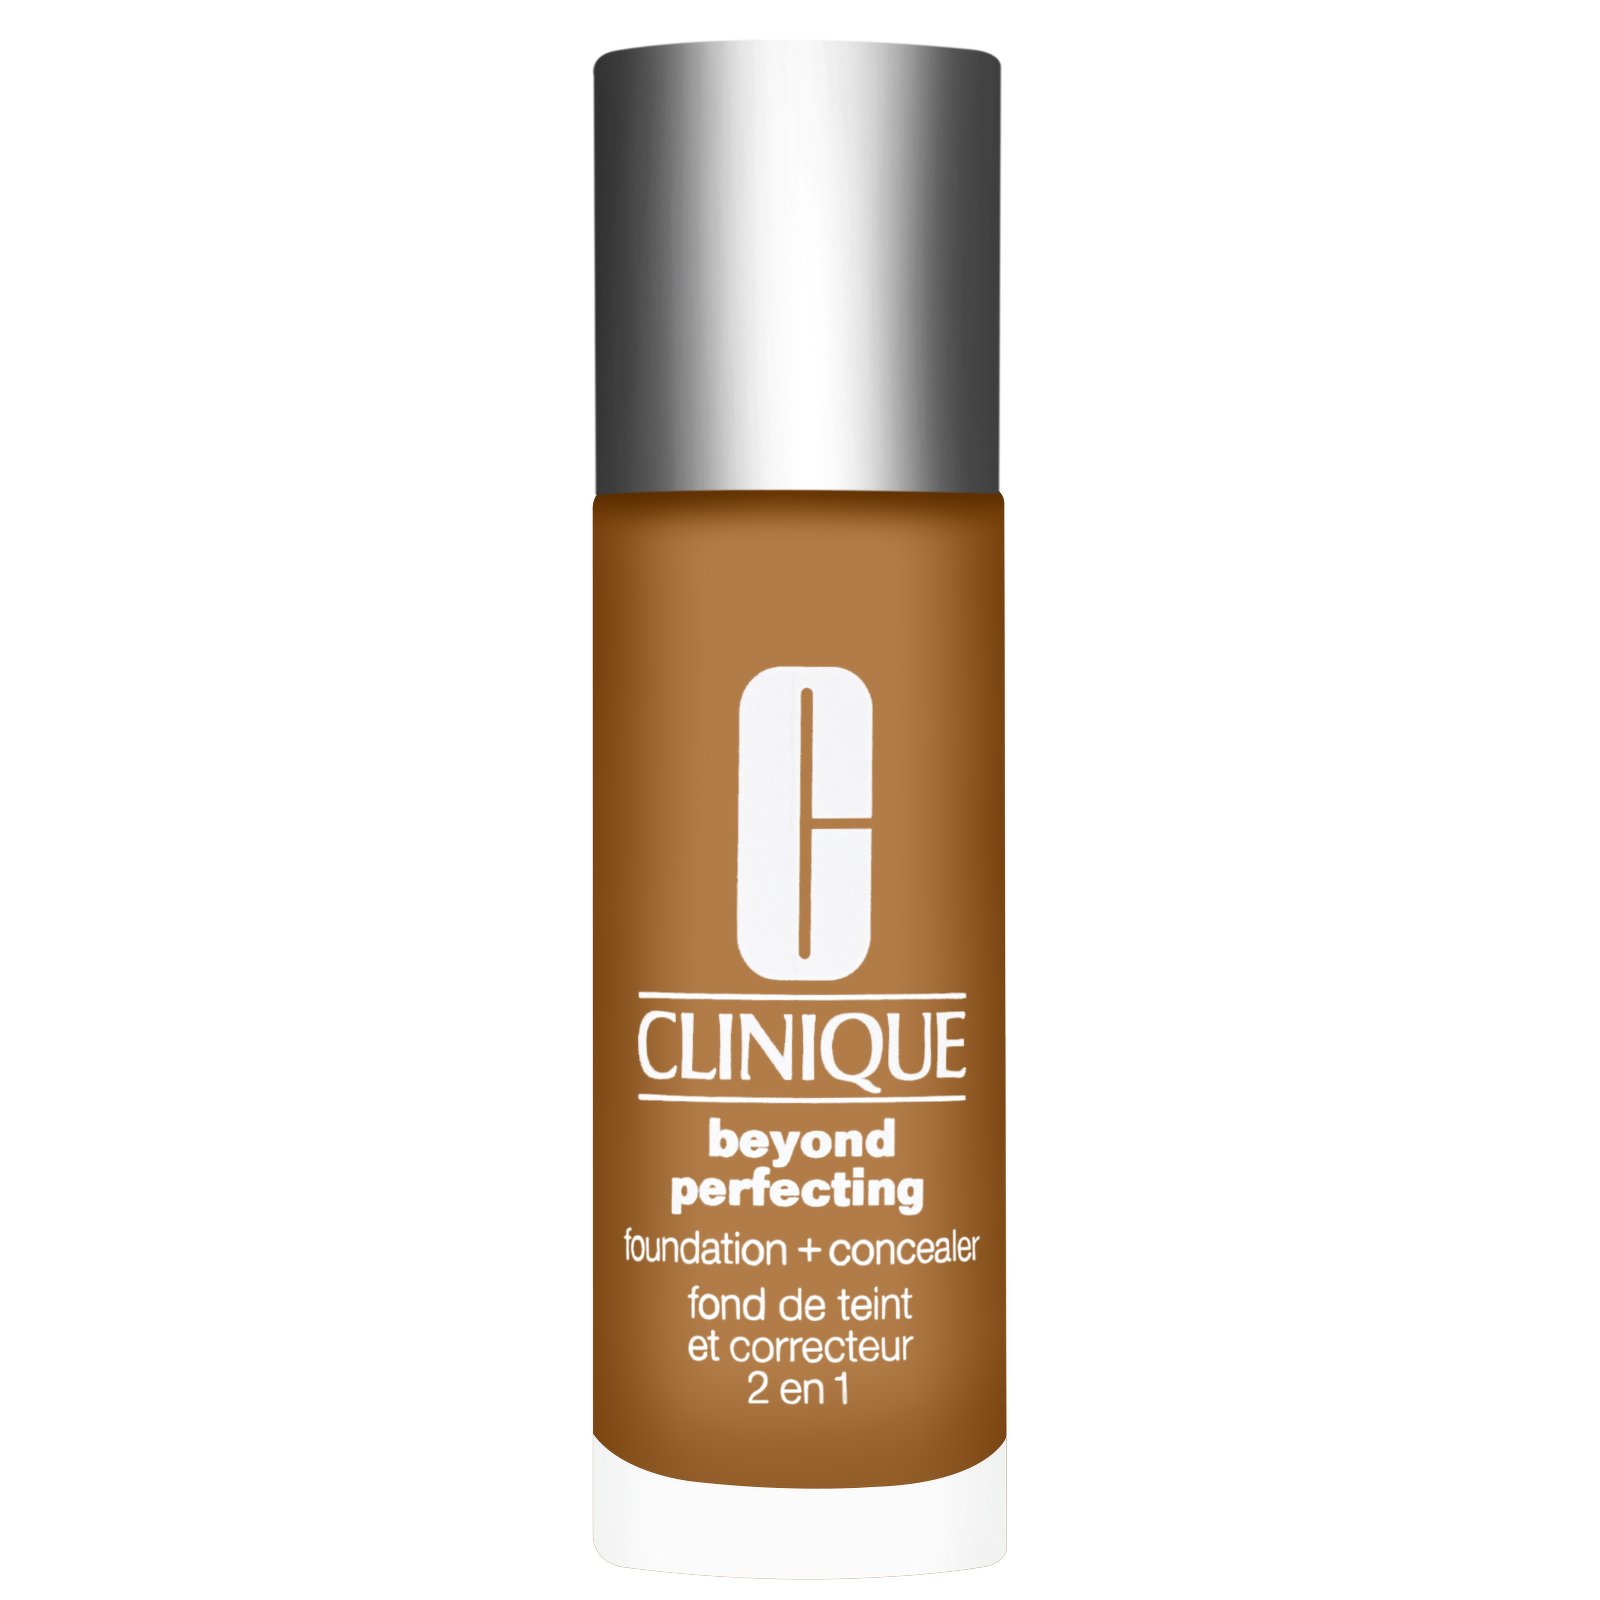 Clinique Beyond Perfecting Foundation + Concealer 23 zenzero 30ml / 1 oz.